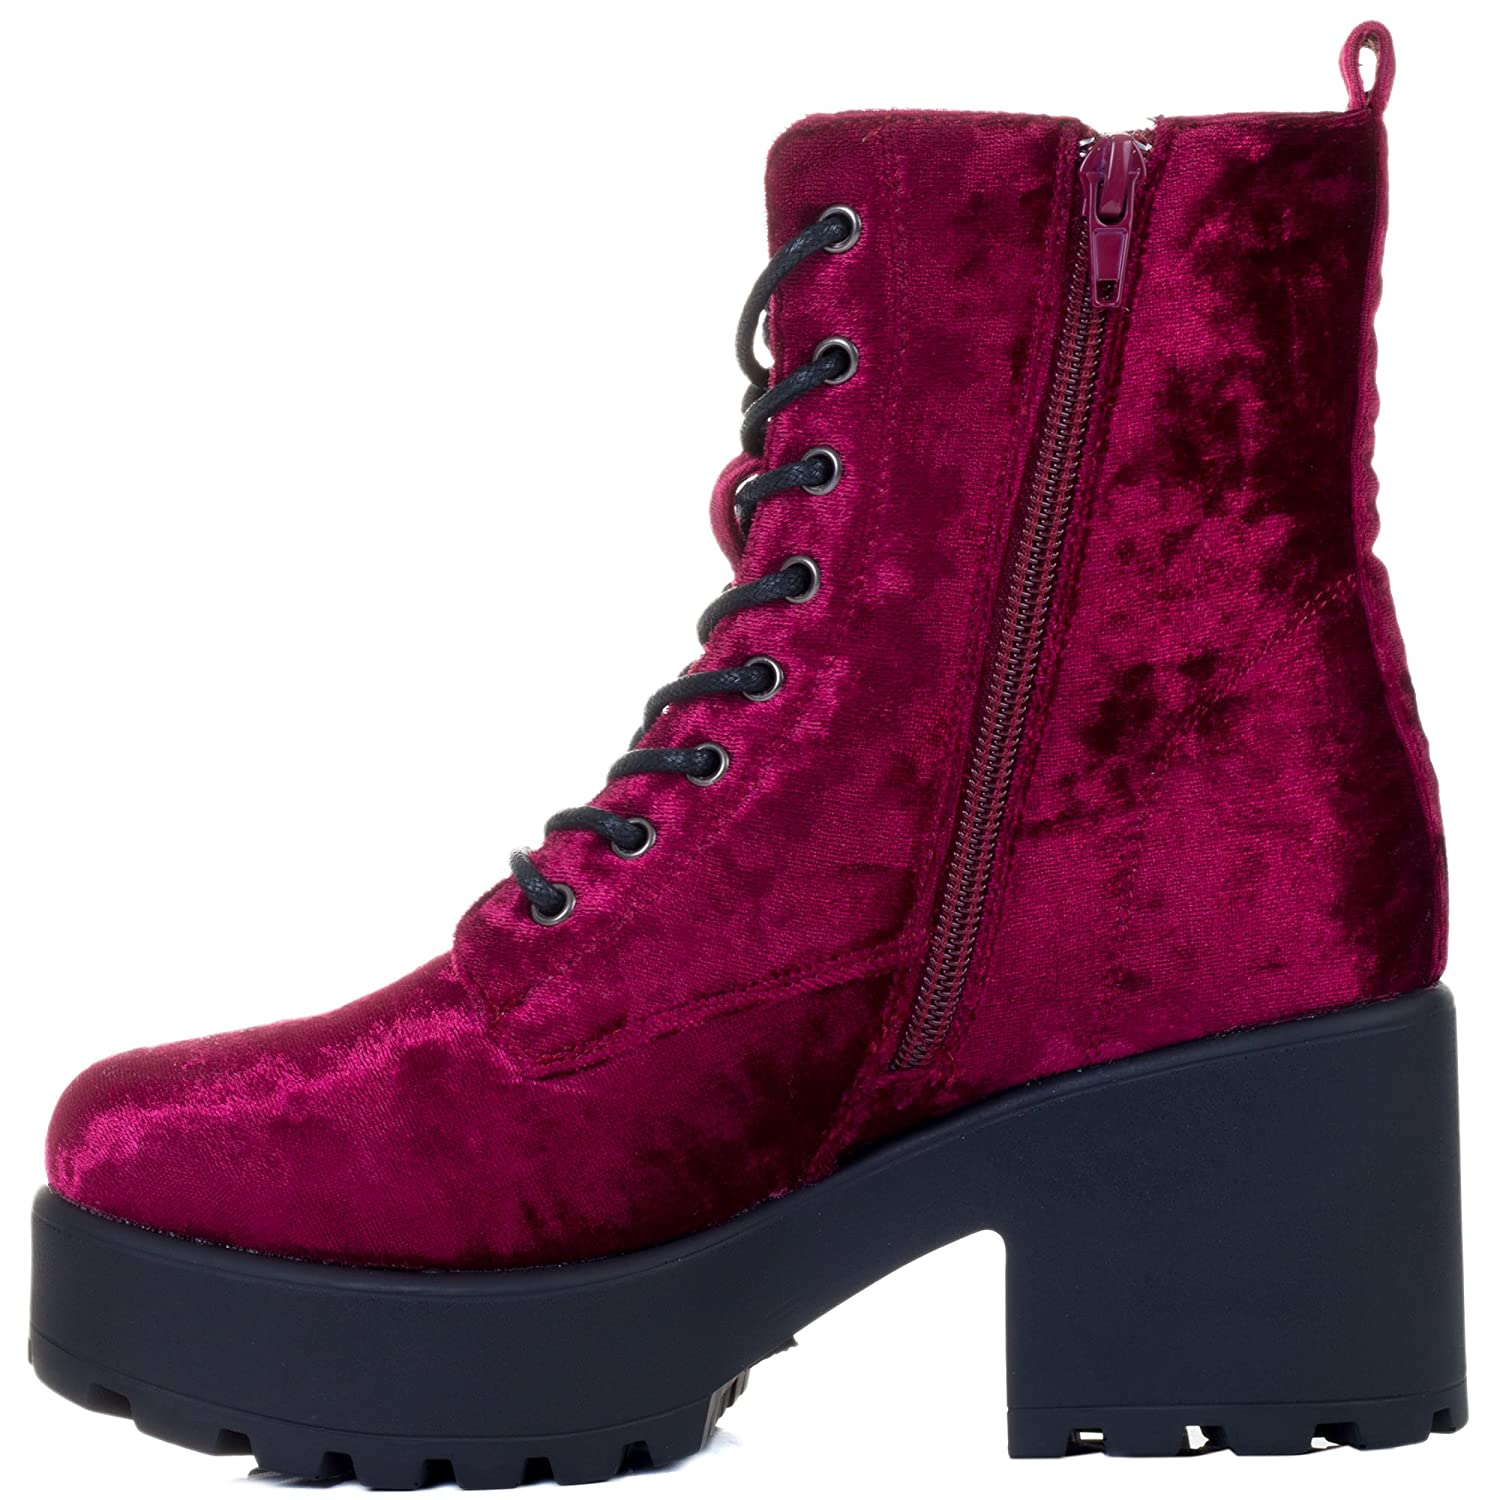 Spylovebuy Shotgun Block Heel Cleated Sole Lace up Platform Ankle Boots B079Y4TZJL 8 B(M) US|Red Wine Velvet Style